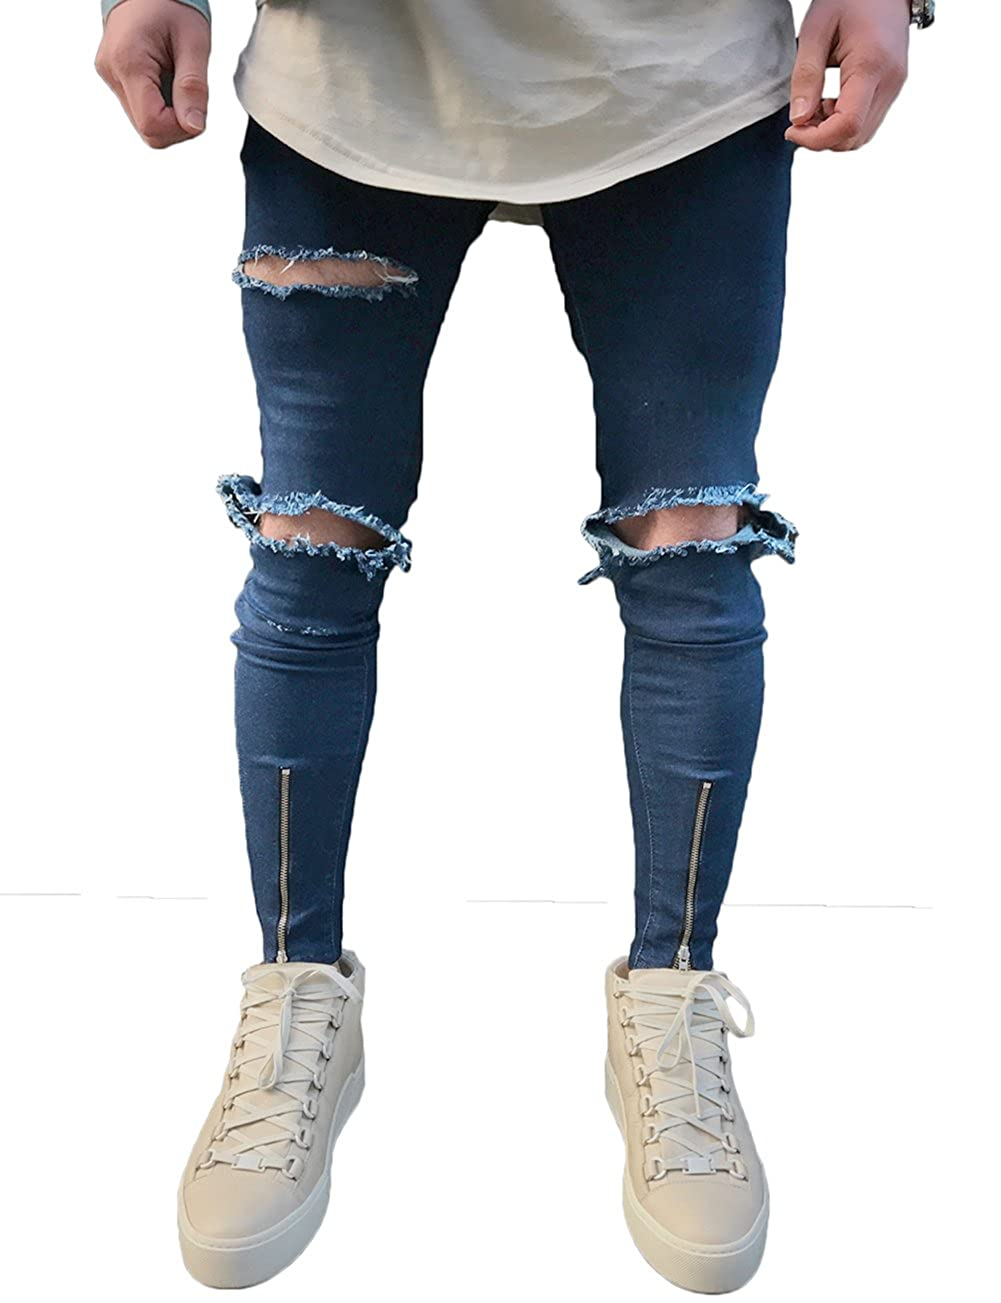 Men's Ripped Slim Fit Jeans Denim Pants with Broken Holes